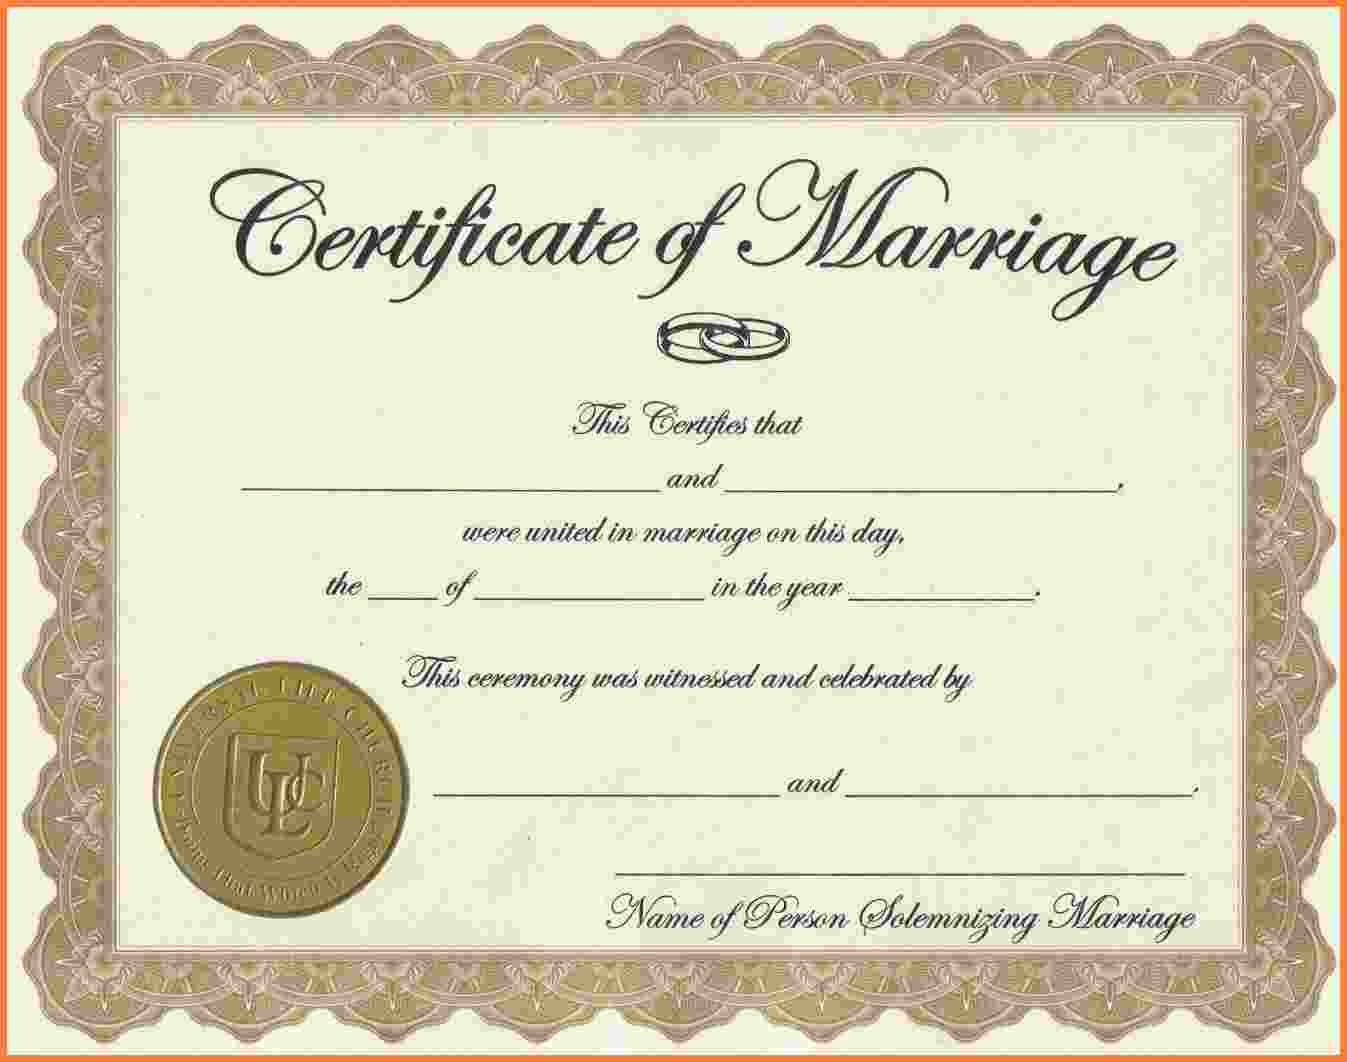 004 Blank Marriage Certificate License Printable Achievement - Fake Marriage Certificate Printable Free